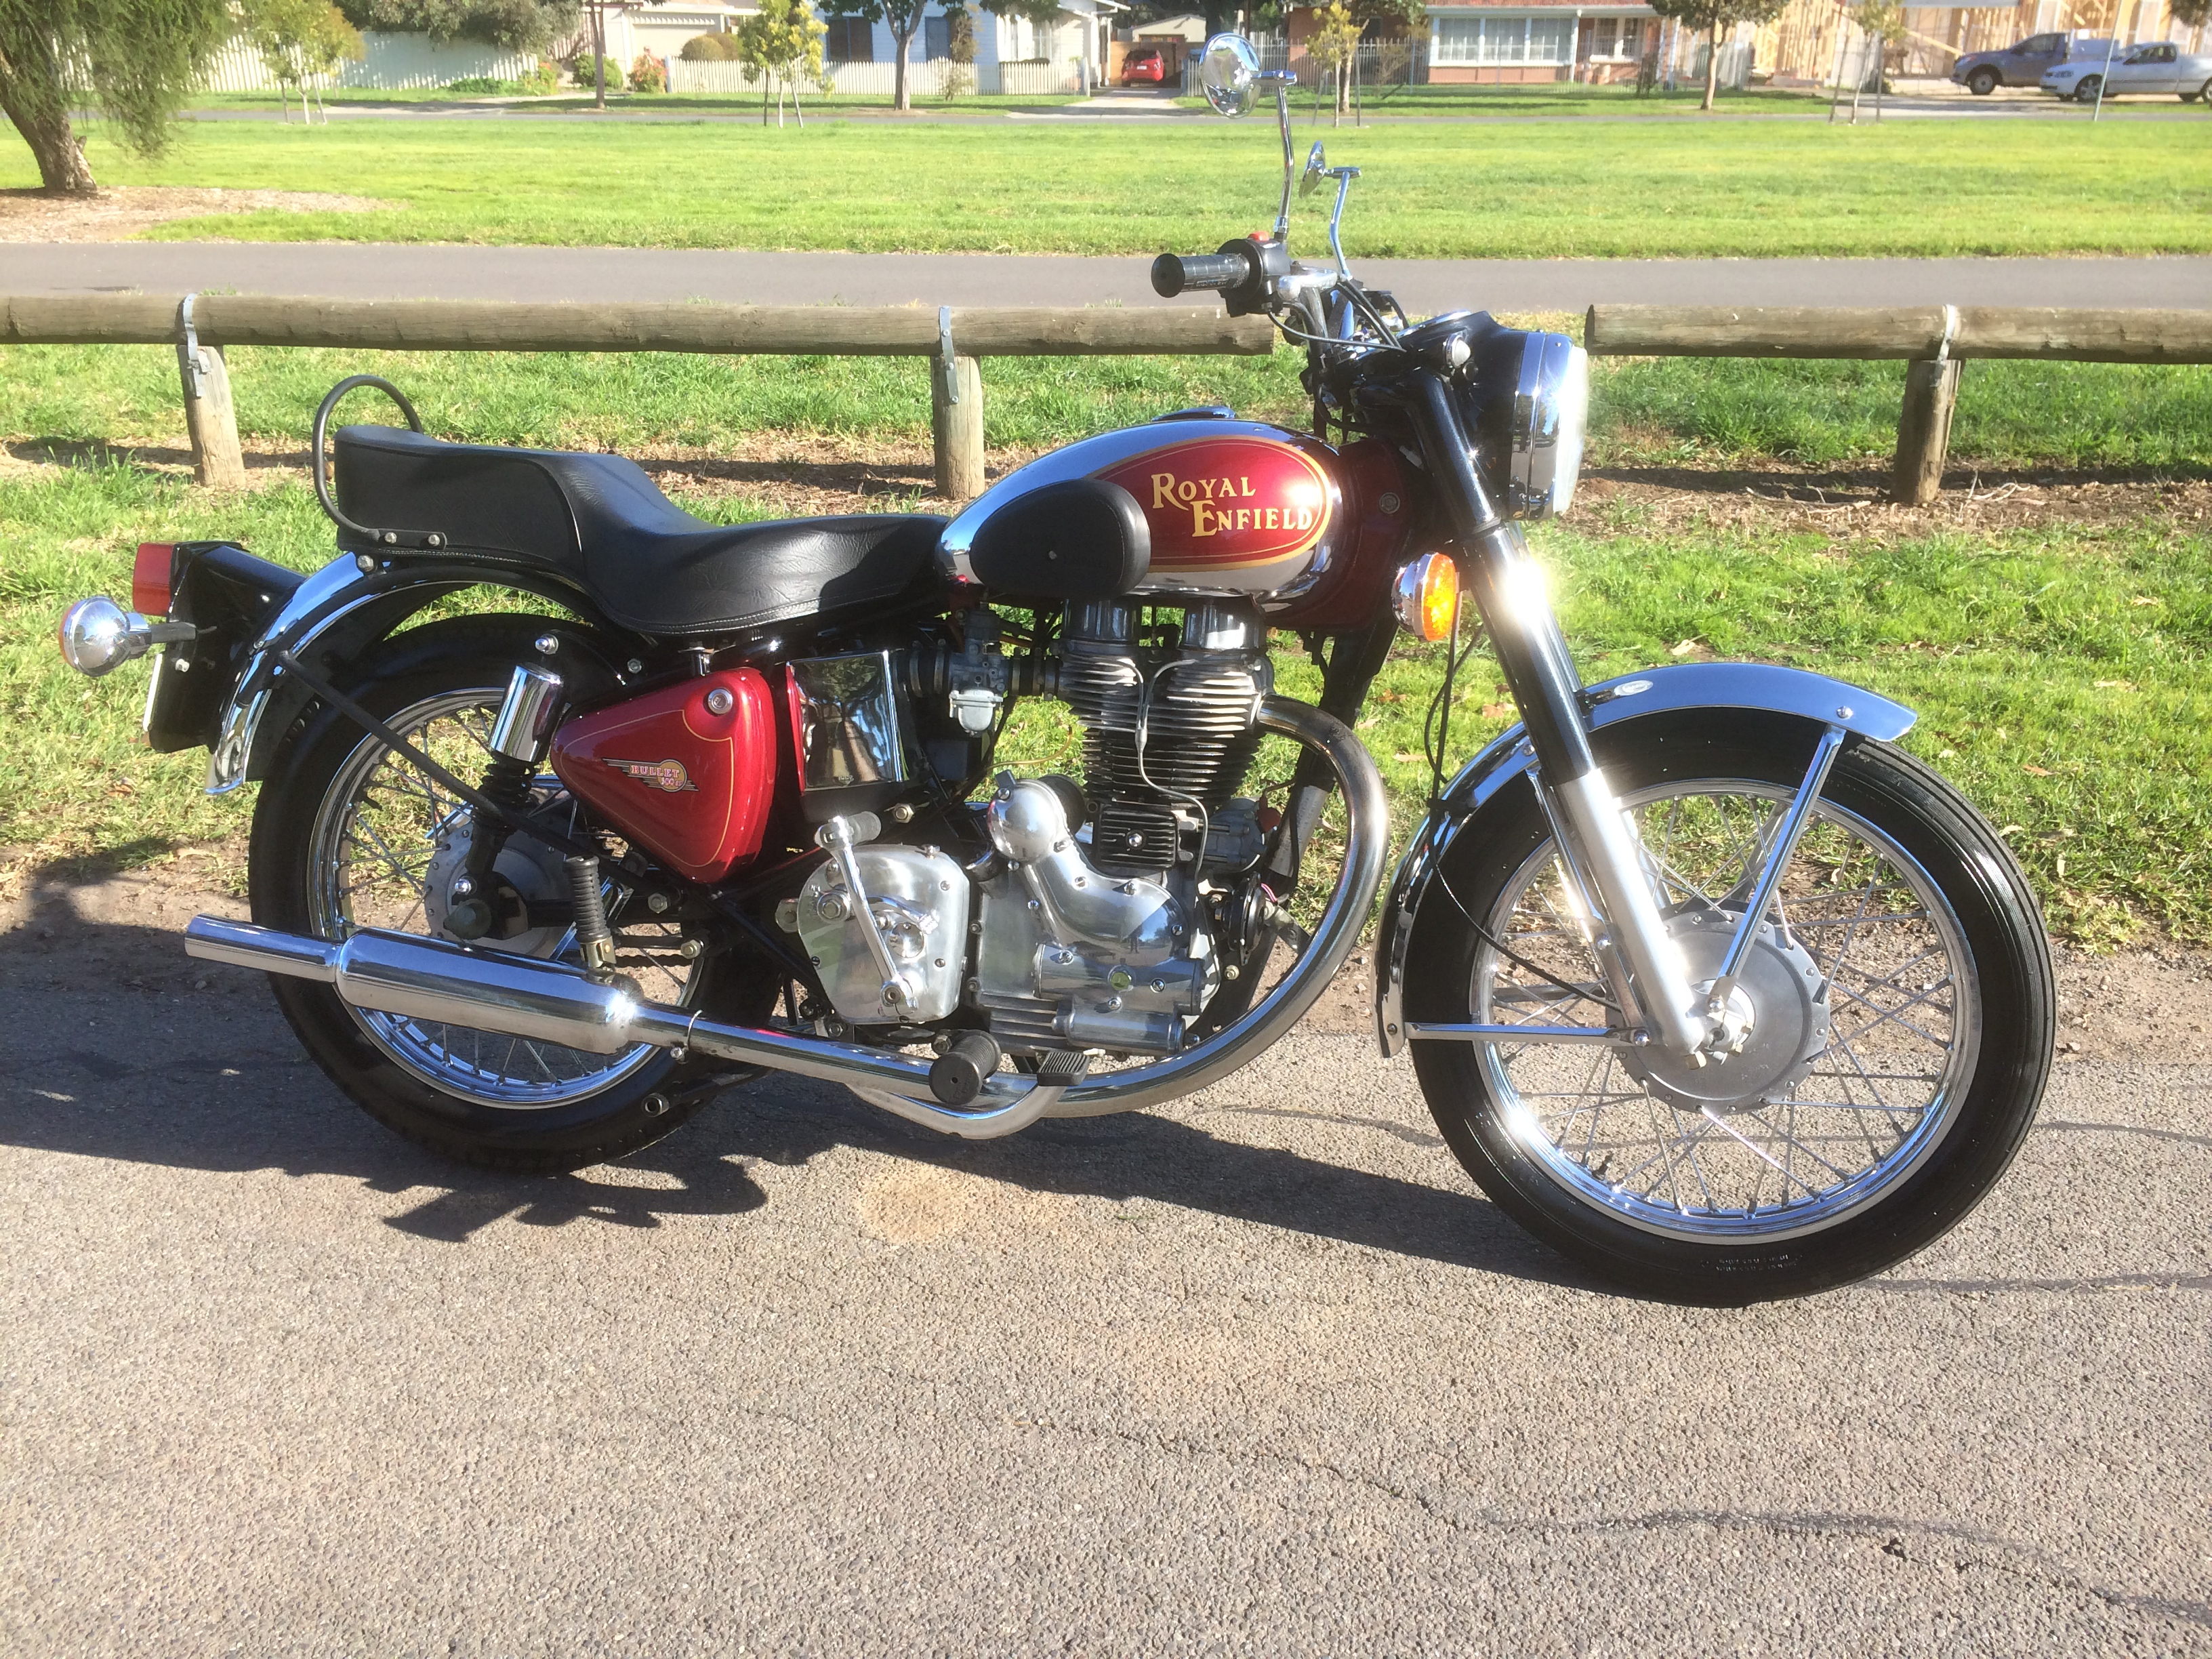 Royal Enfield Bullet 500 Army 2002 images #123415